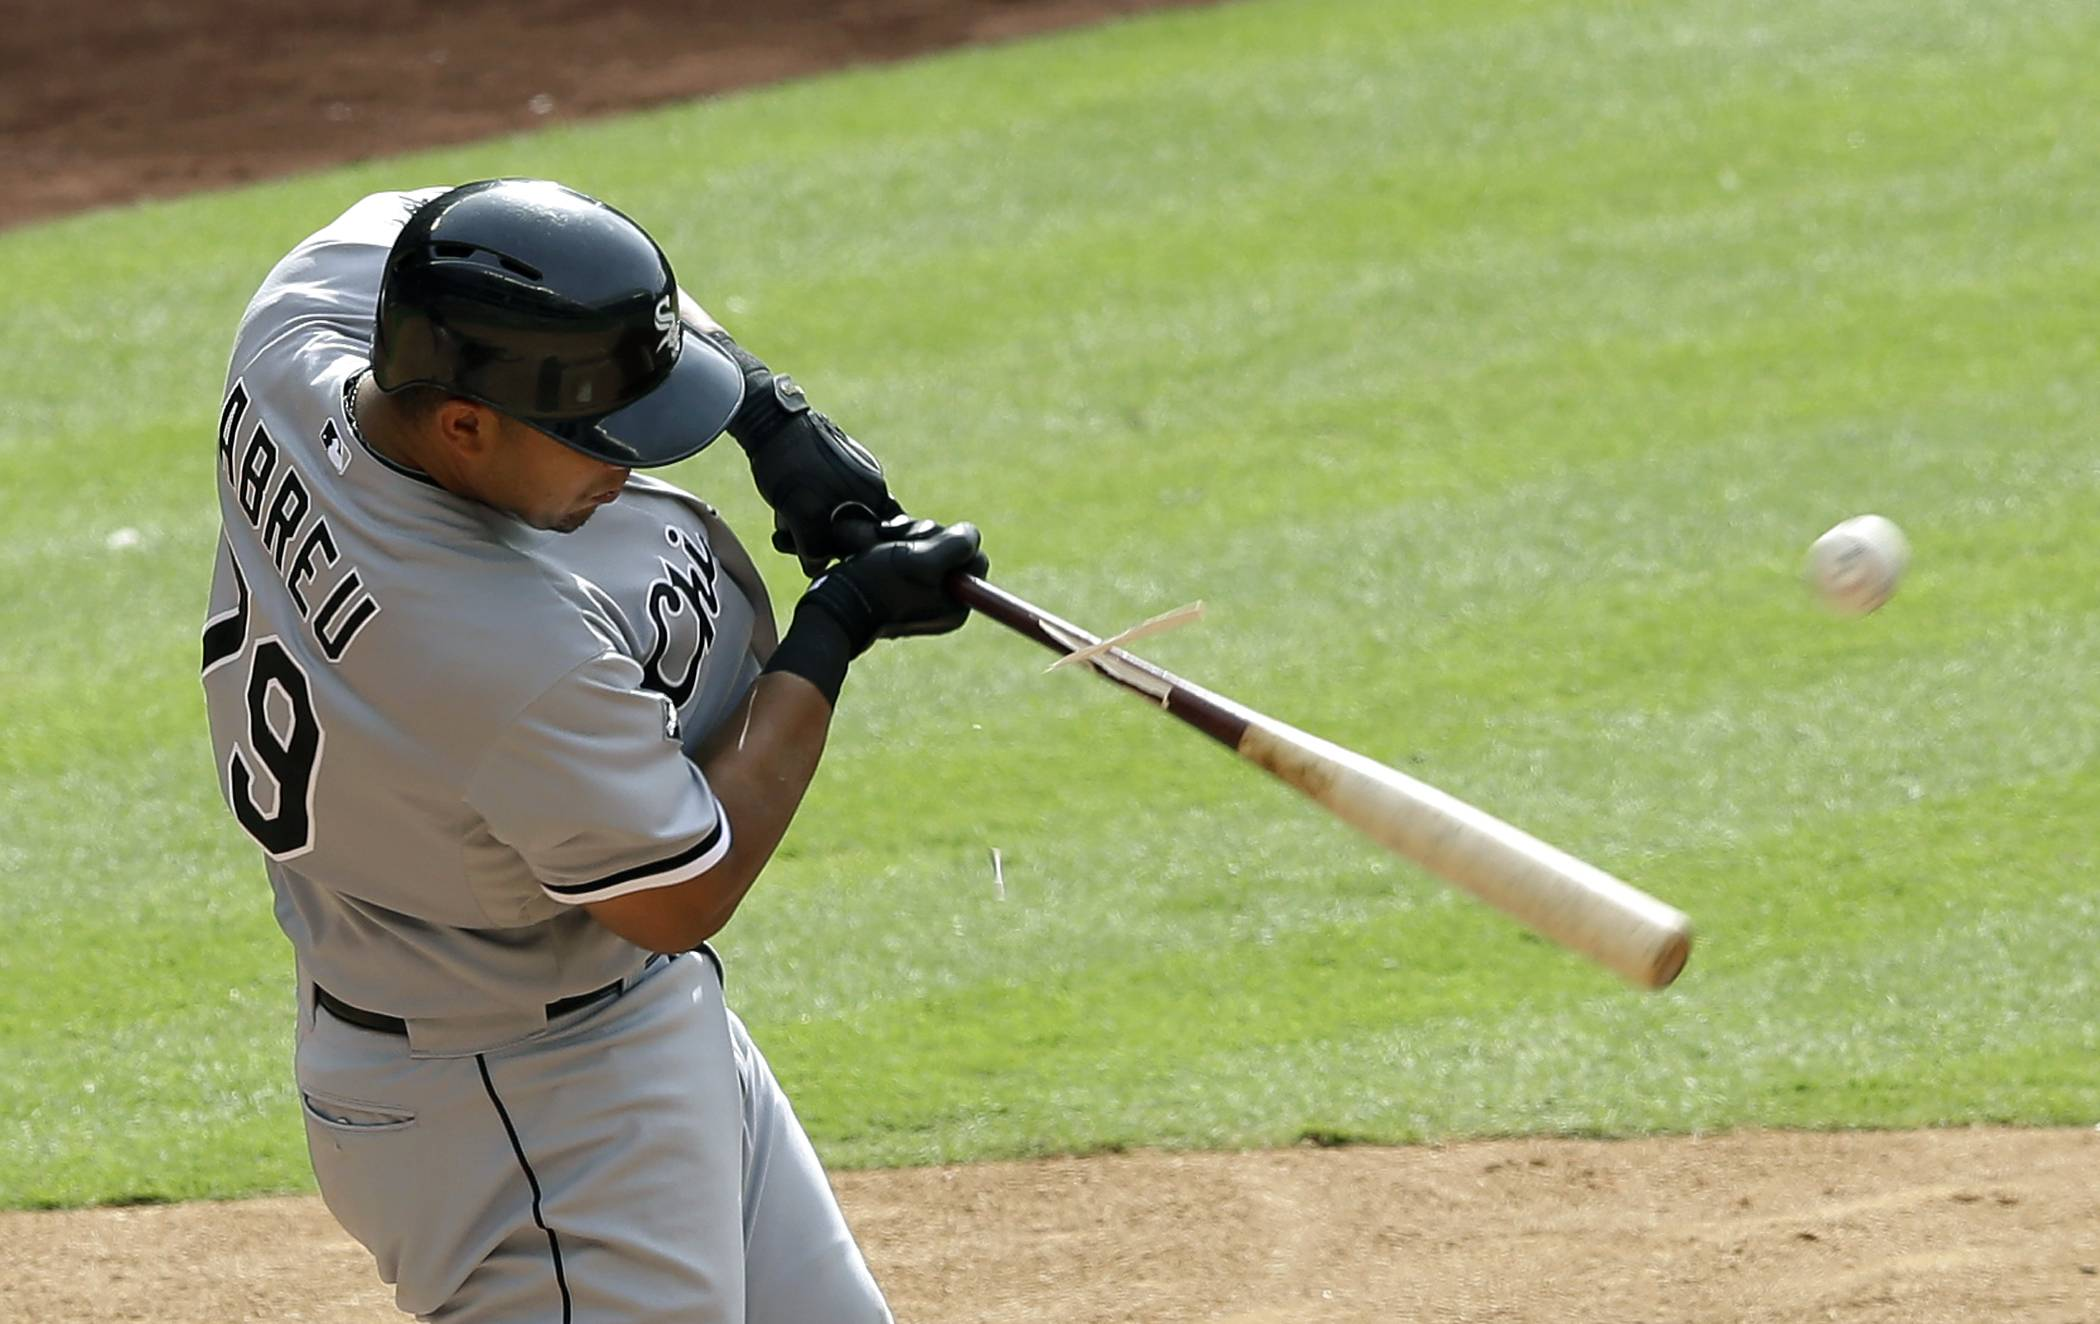 White Sox put Abreu on 15-day disabled list